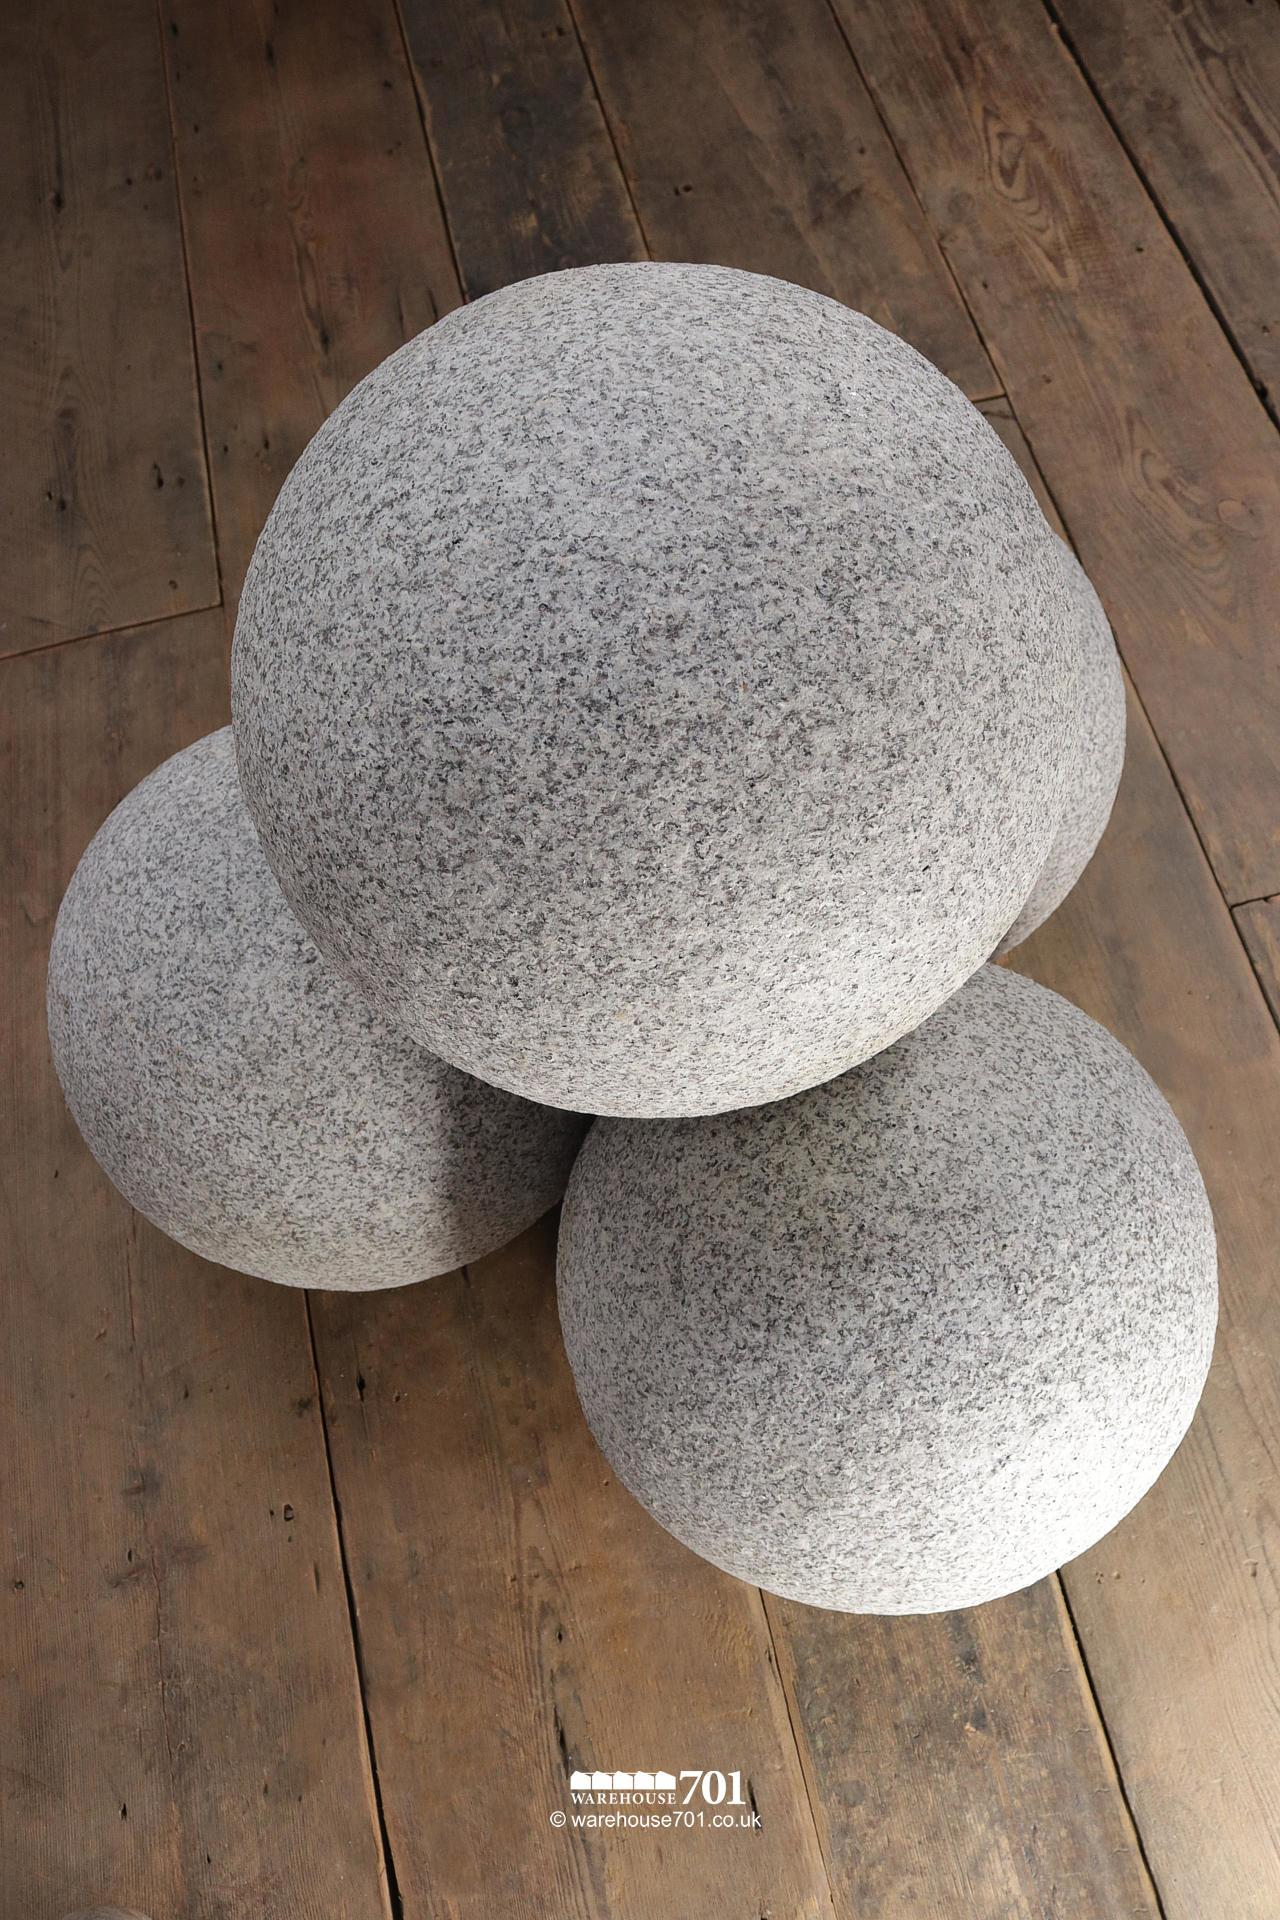 Granite Balls or Stone Spheres for Gate Pillars and Gardens #3